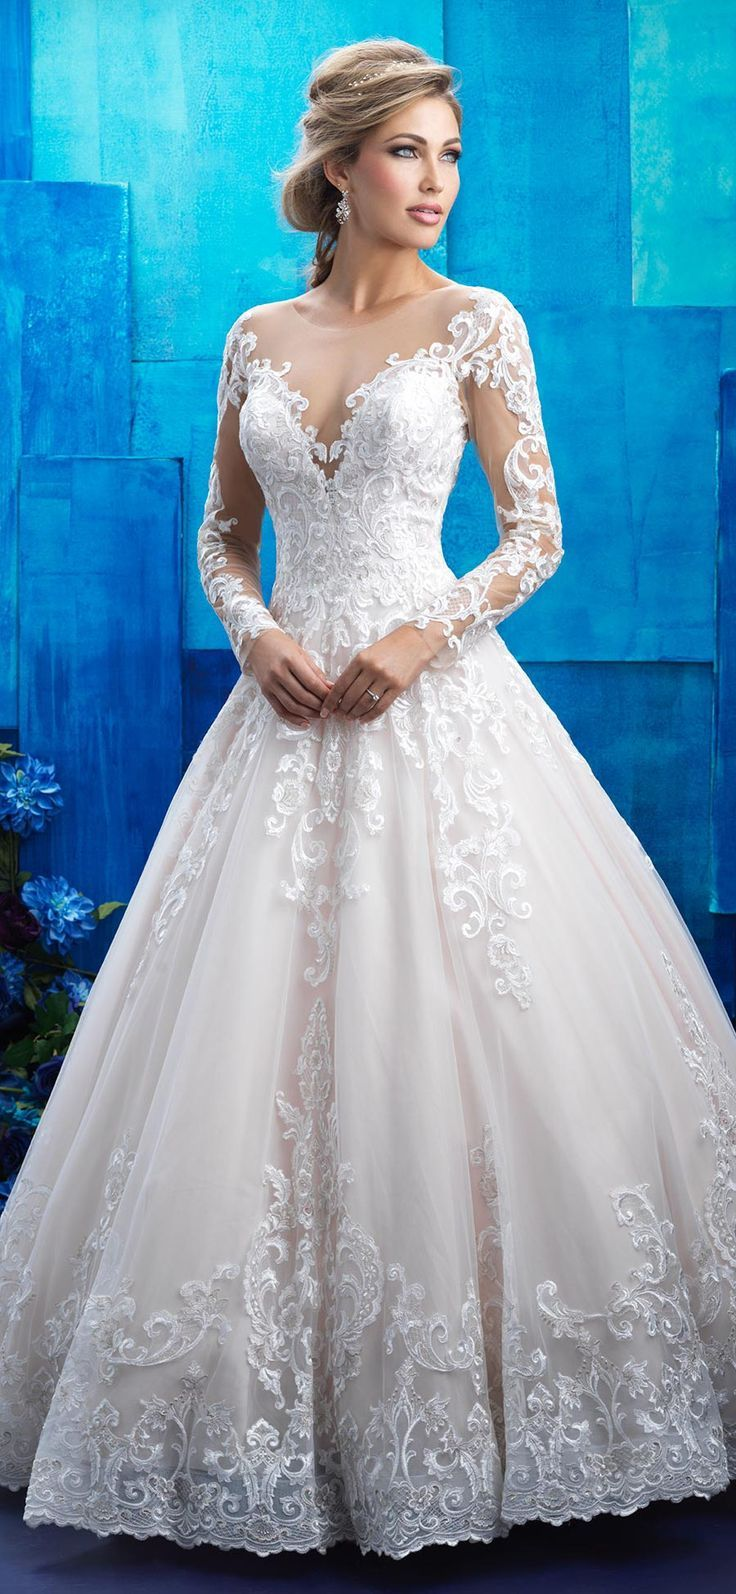 The Search For the Dream Wedding Dress in 3 Steps